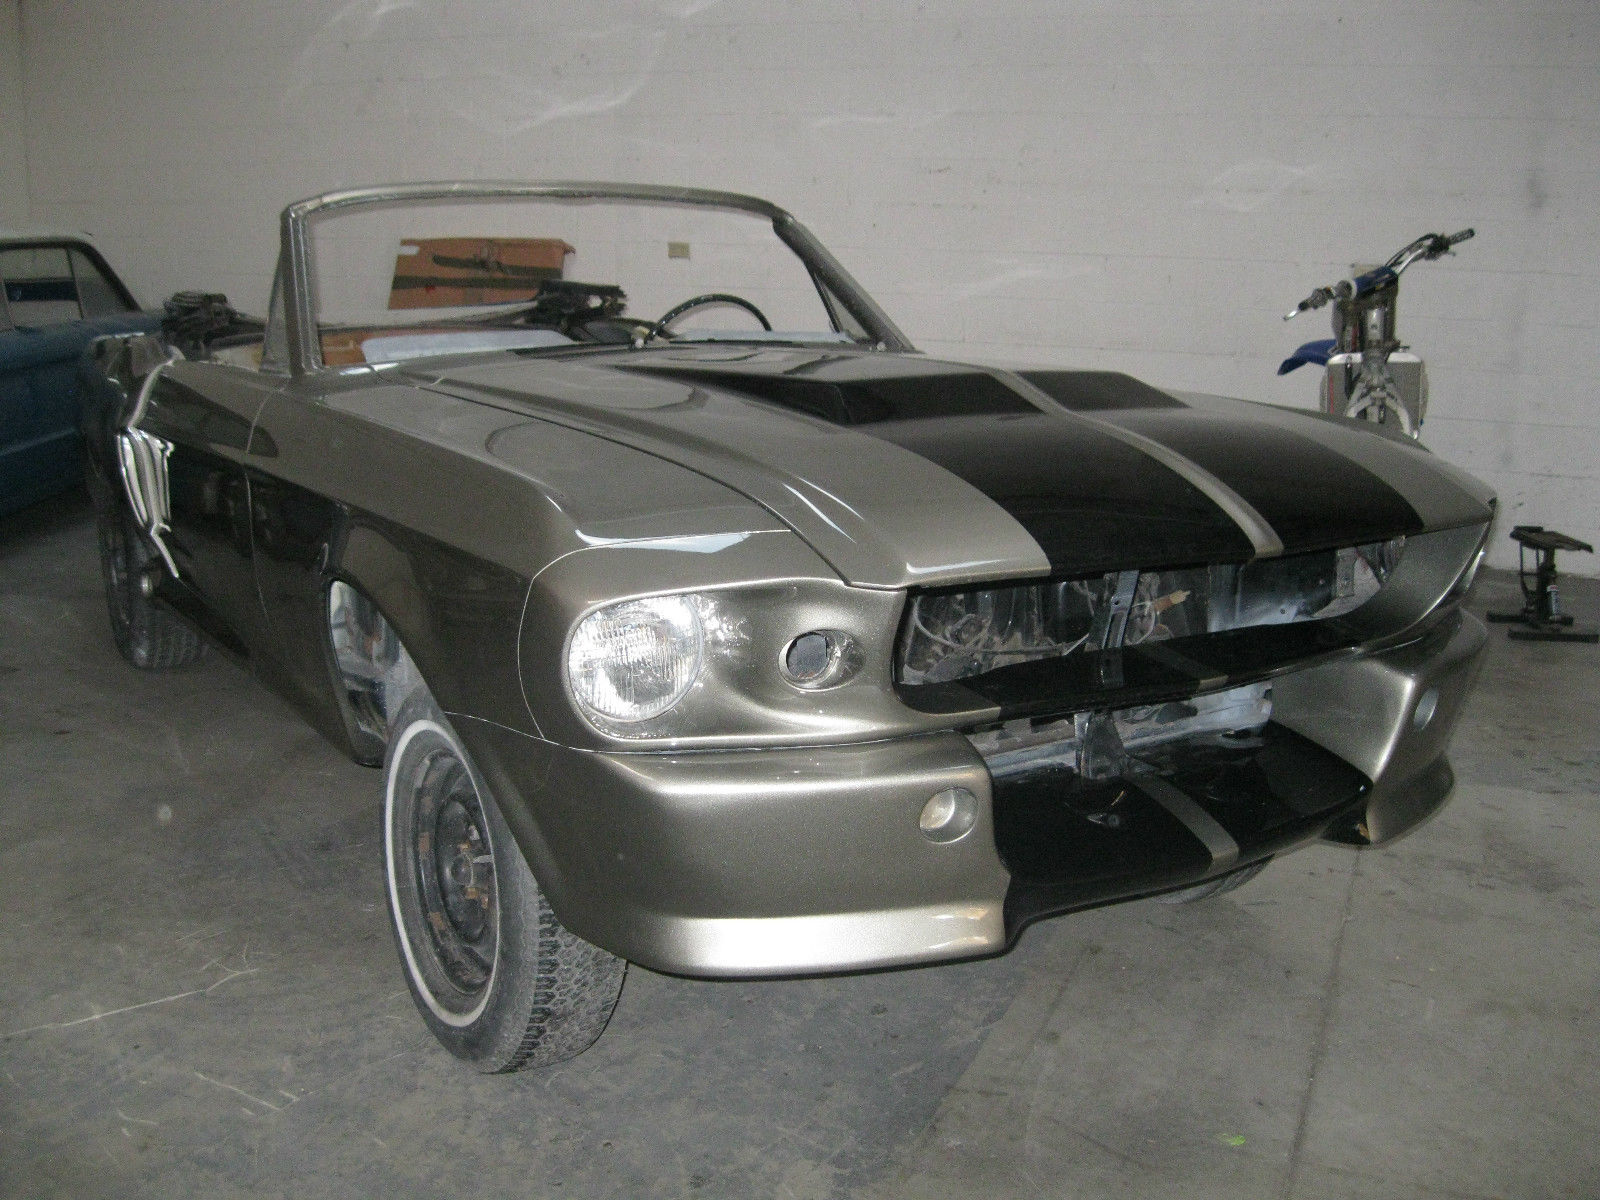 1967 eleanor mustang project car for sale in carlsbad california united states. Black Bedroom Furniture Sets. Home Design Ideas